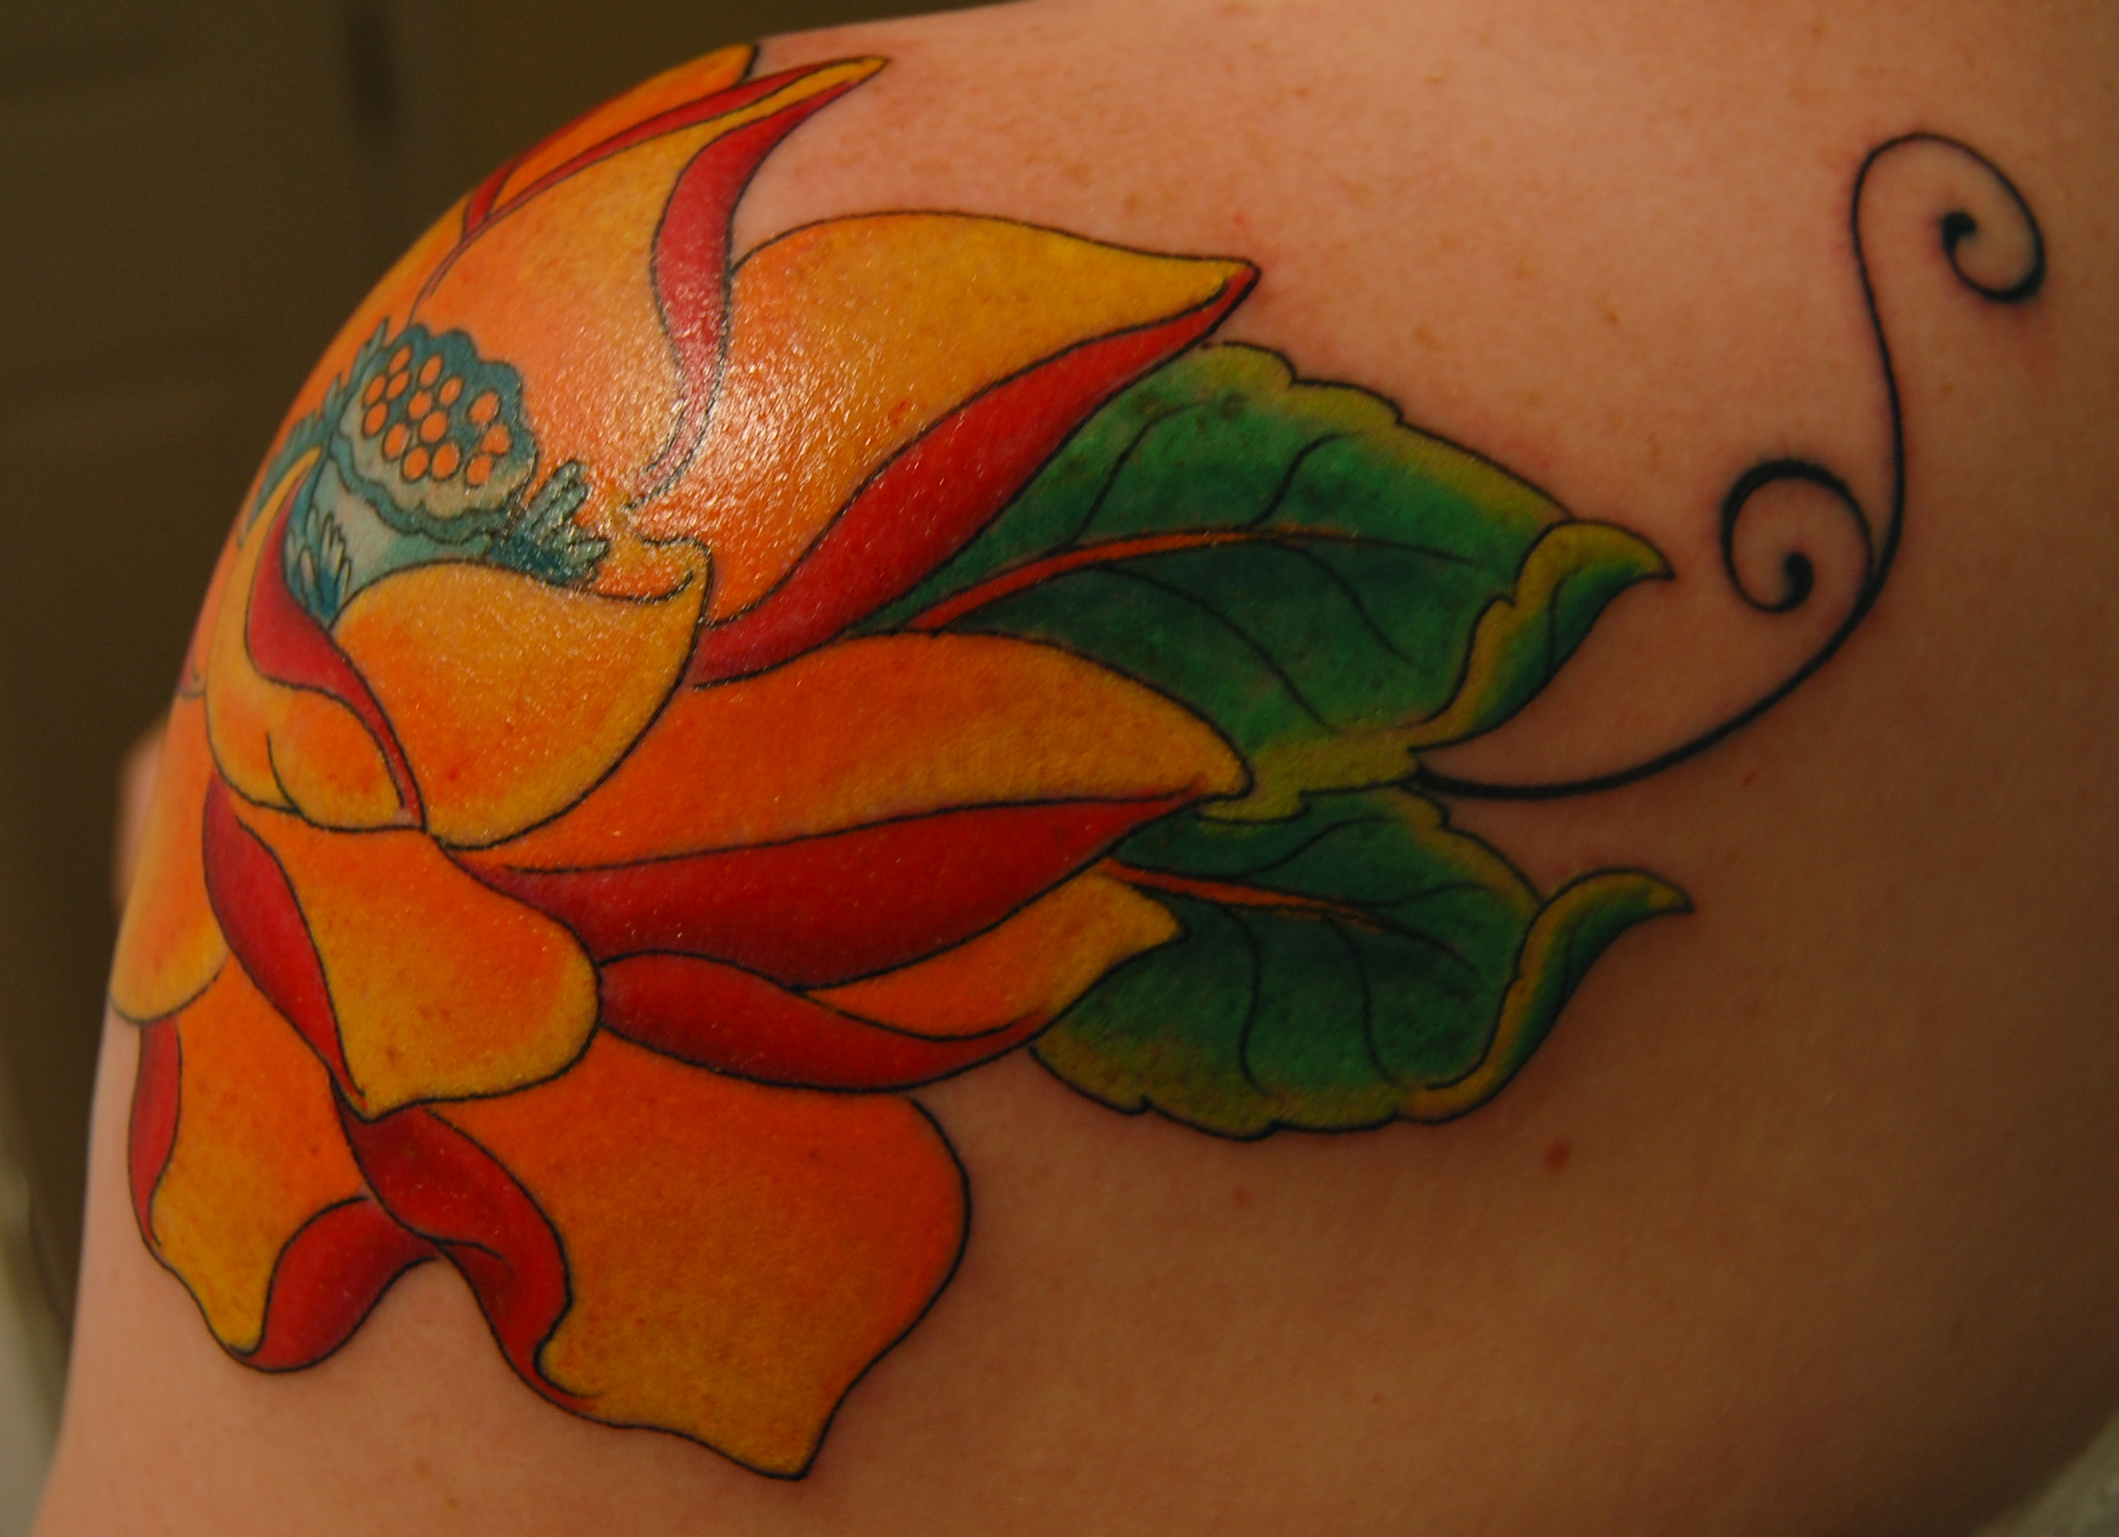 Miscarriage Tattoos Memorial for Babies